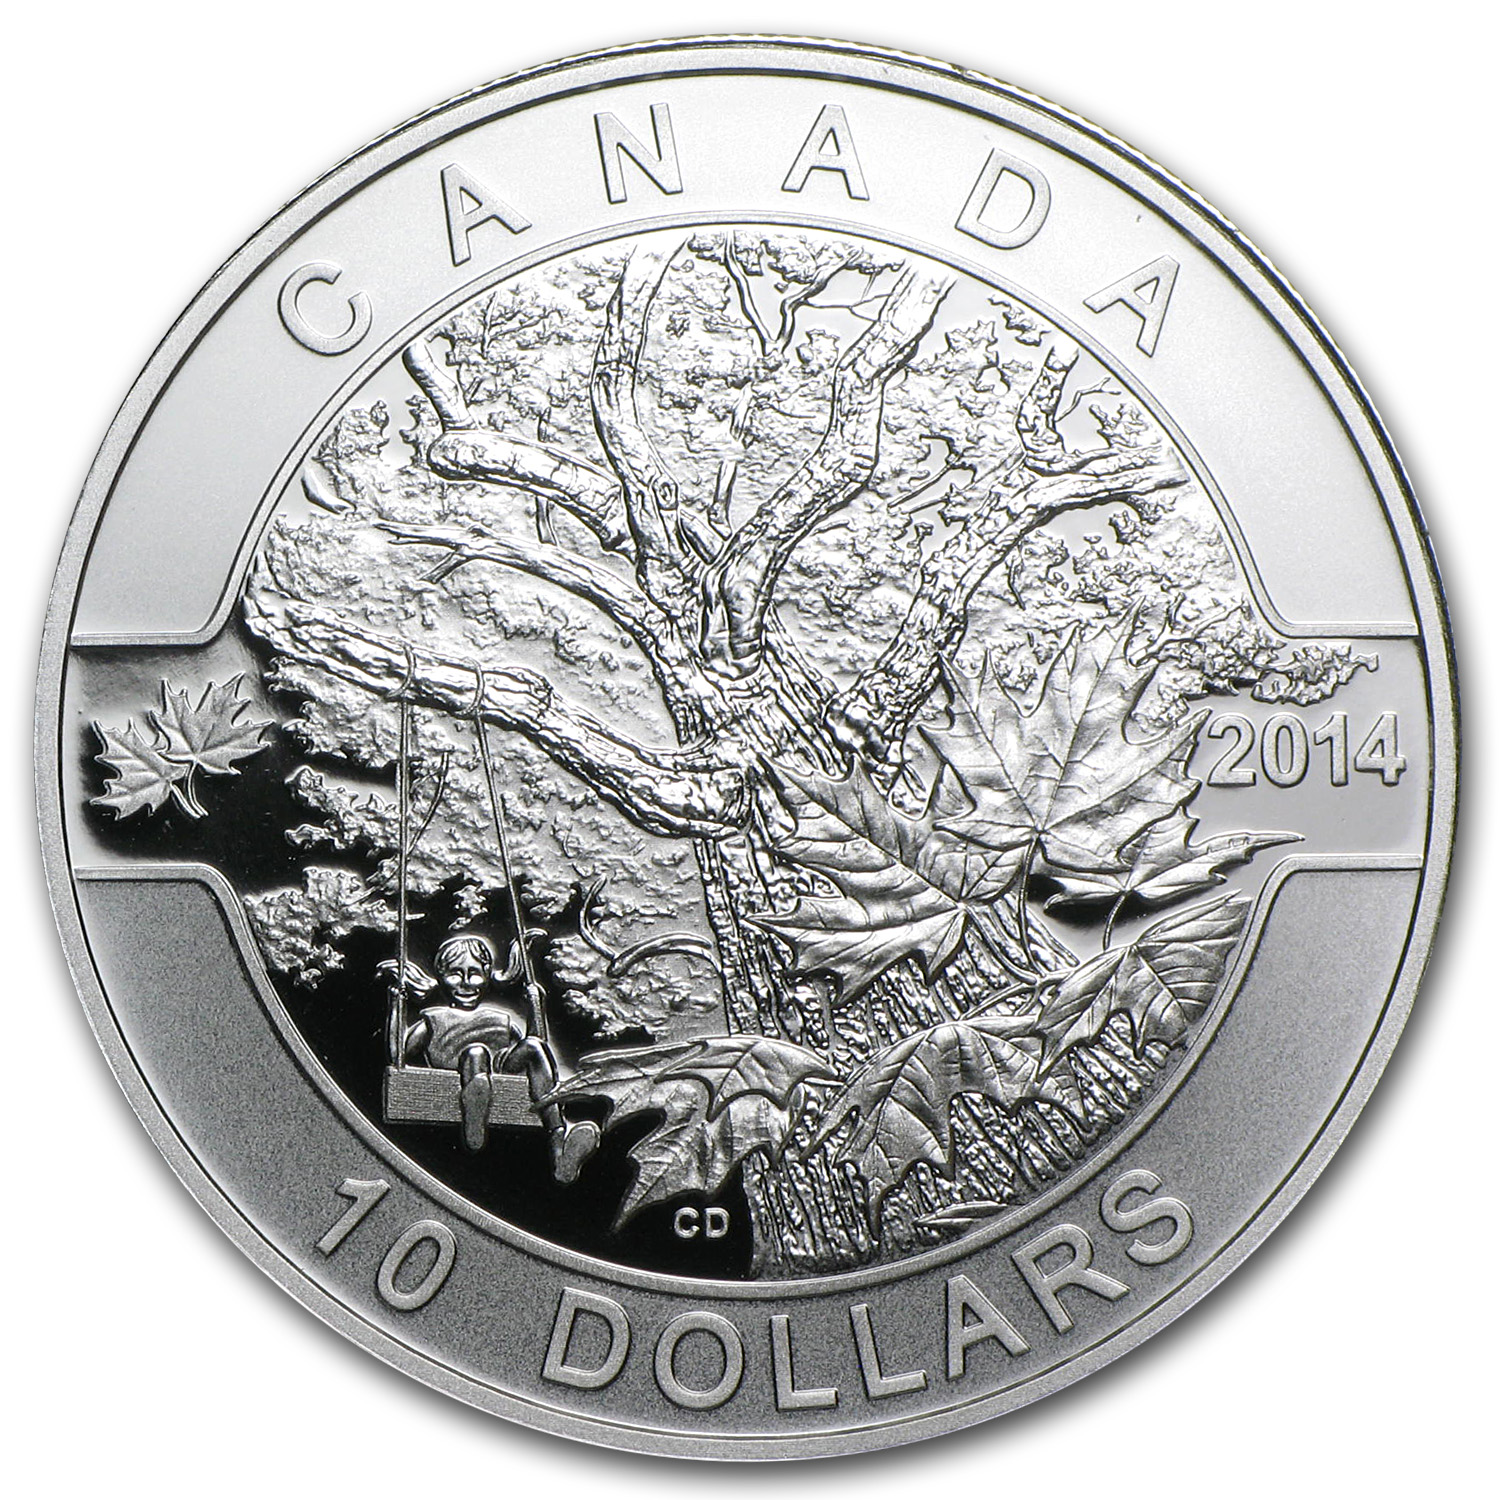 2014 Canada 1/2 oz Silver O Canada Down By the Old Maple Tree